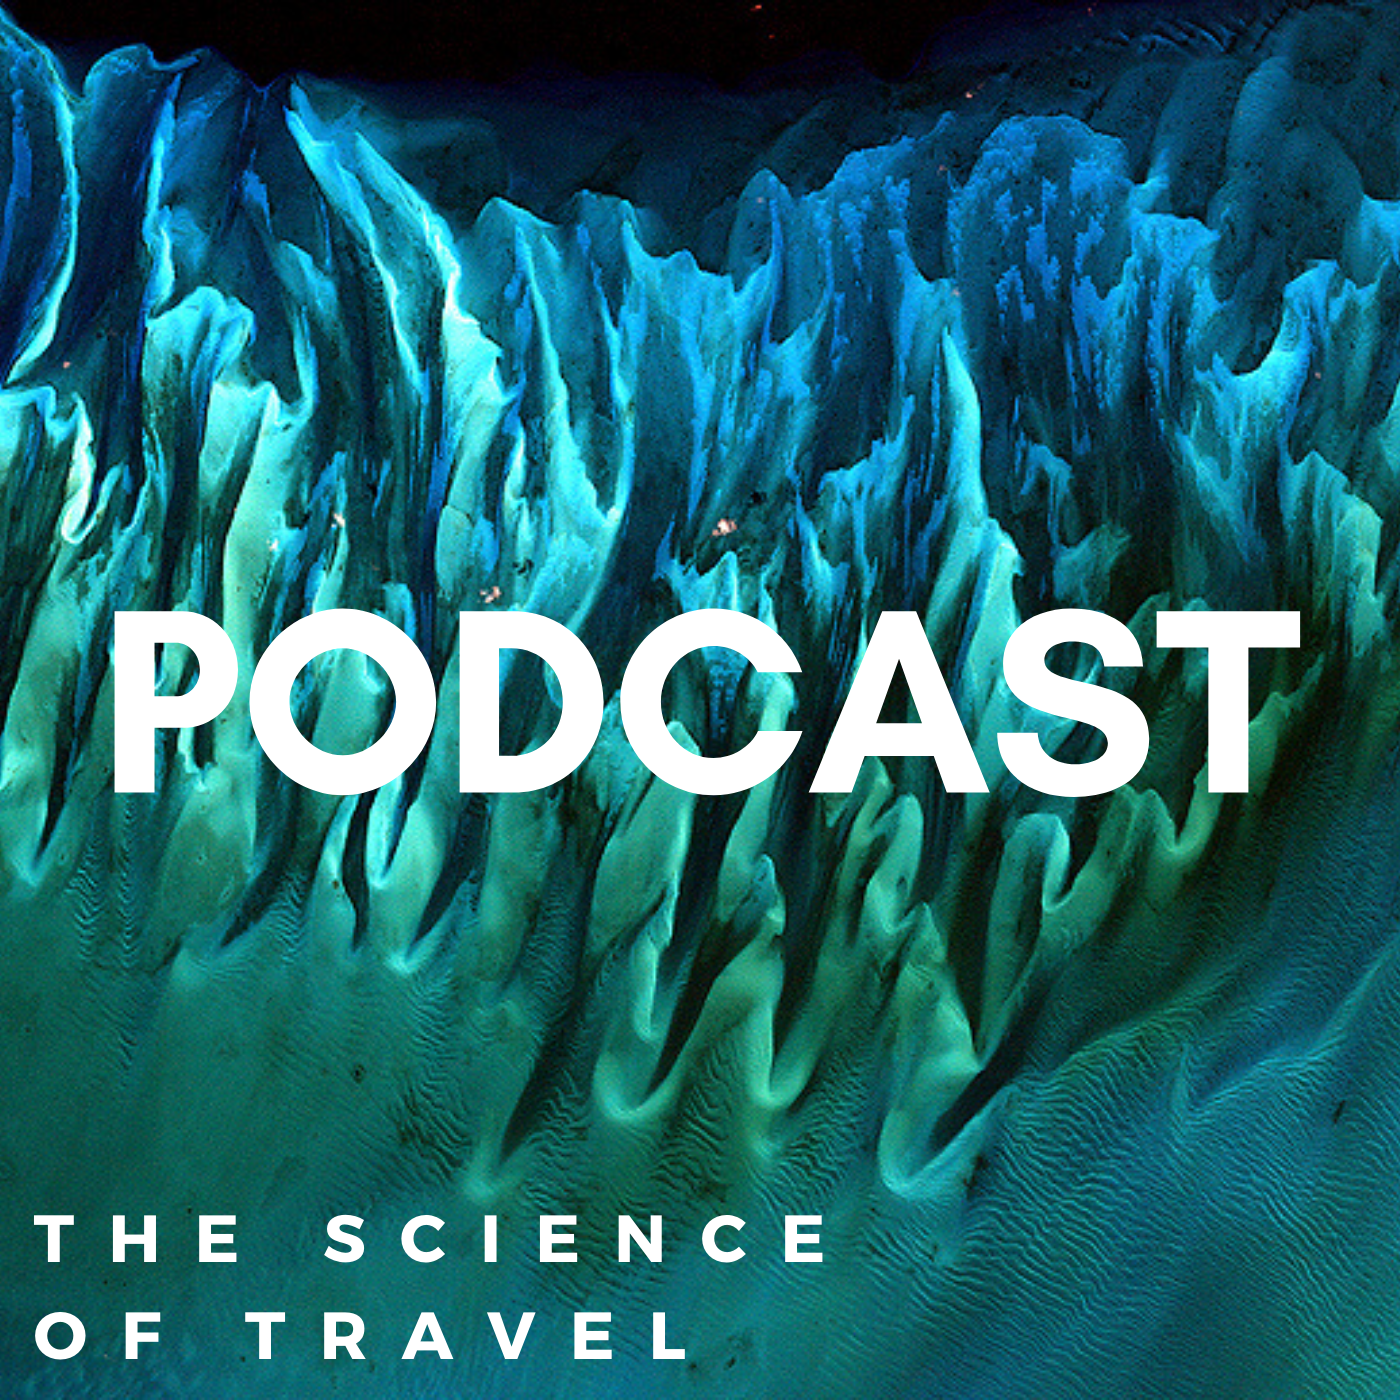 The Science of Travel Podcast